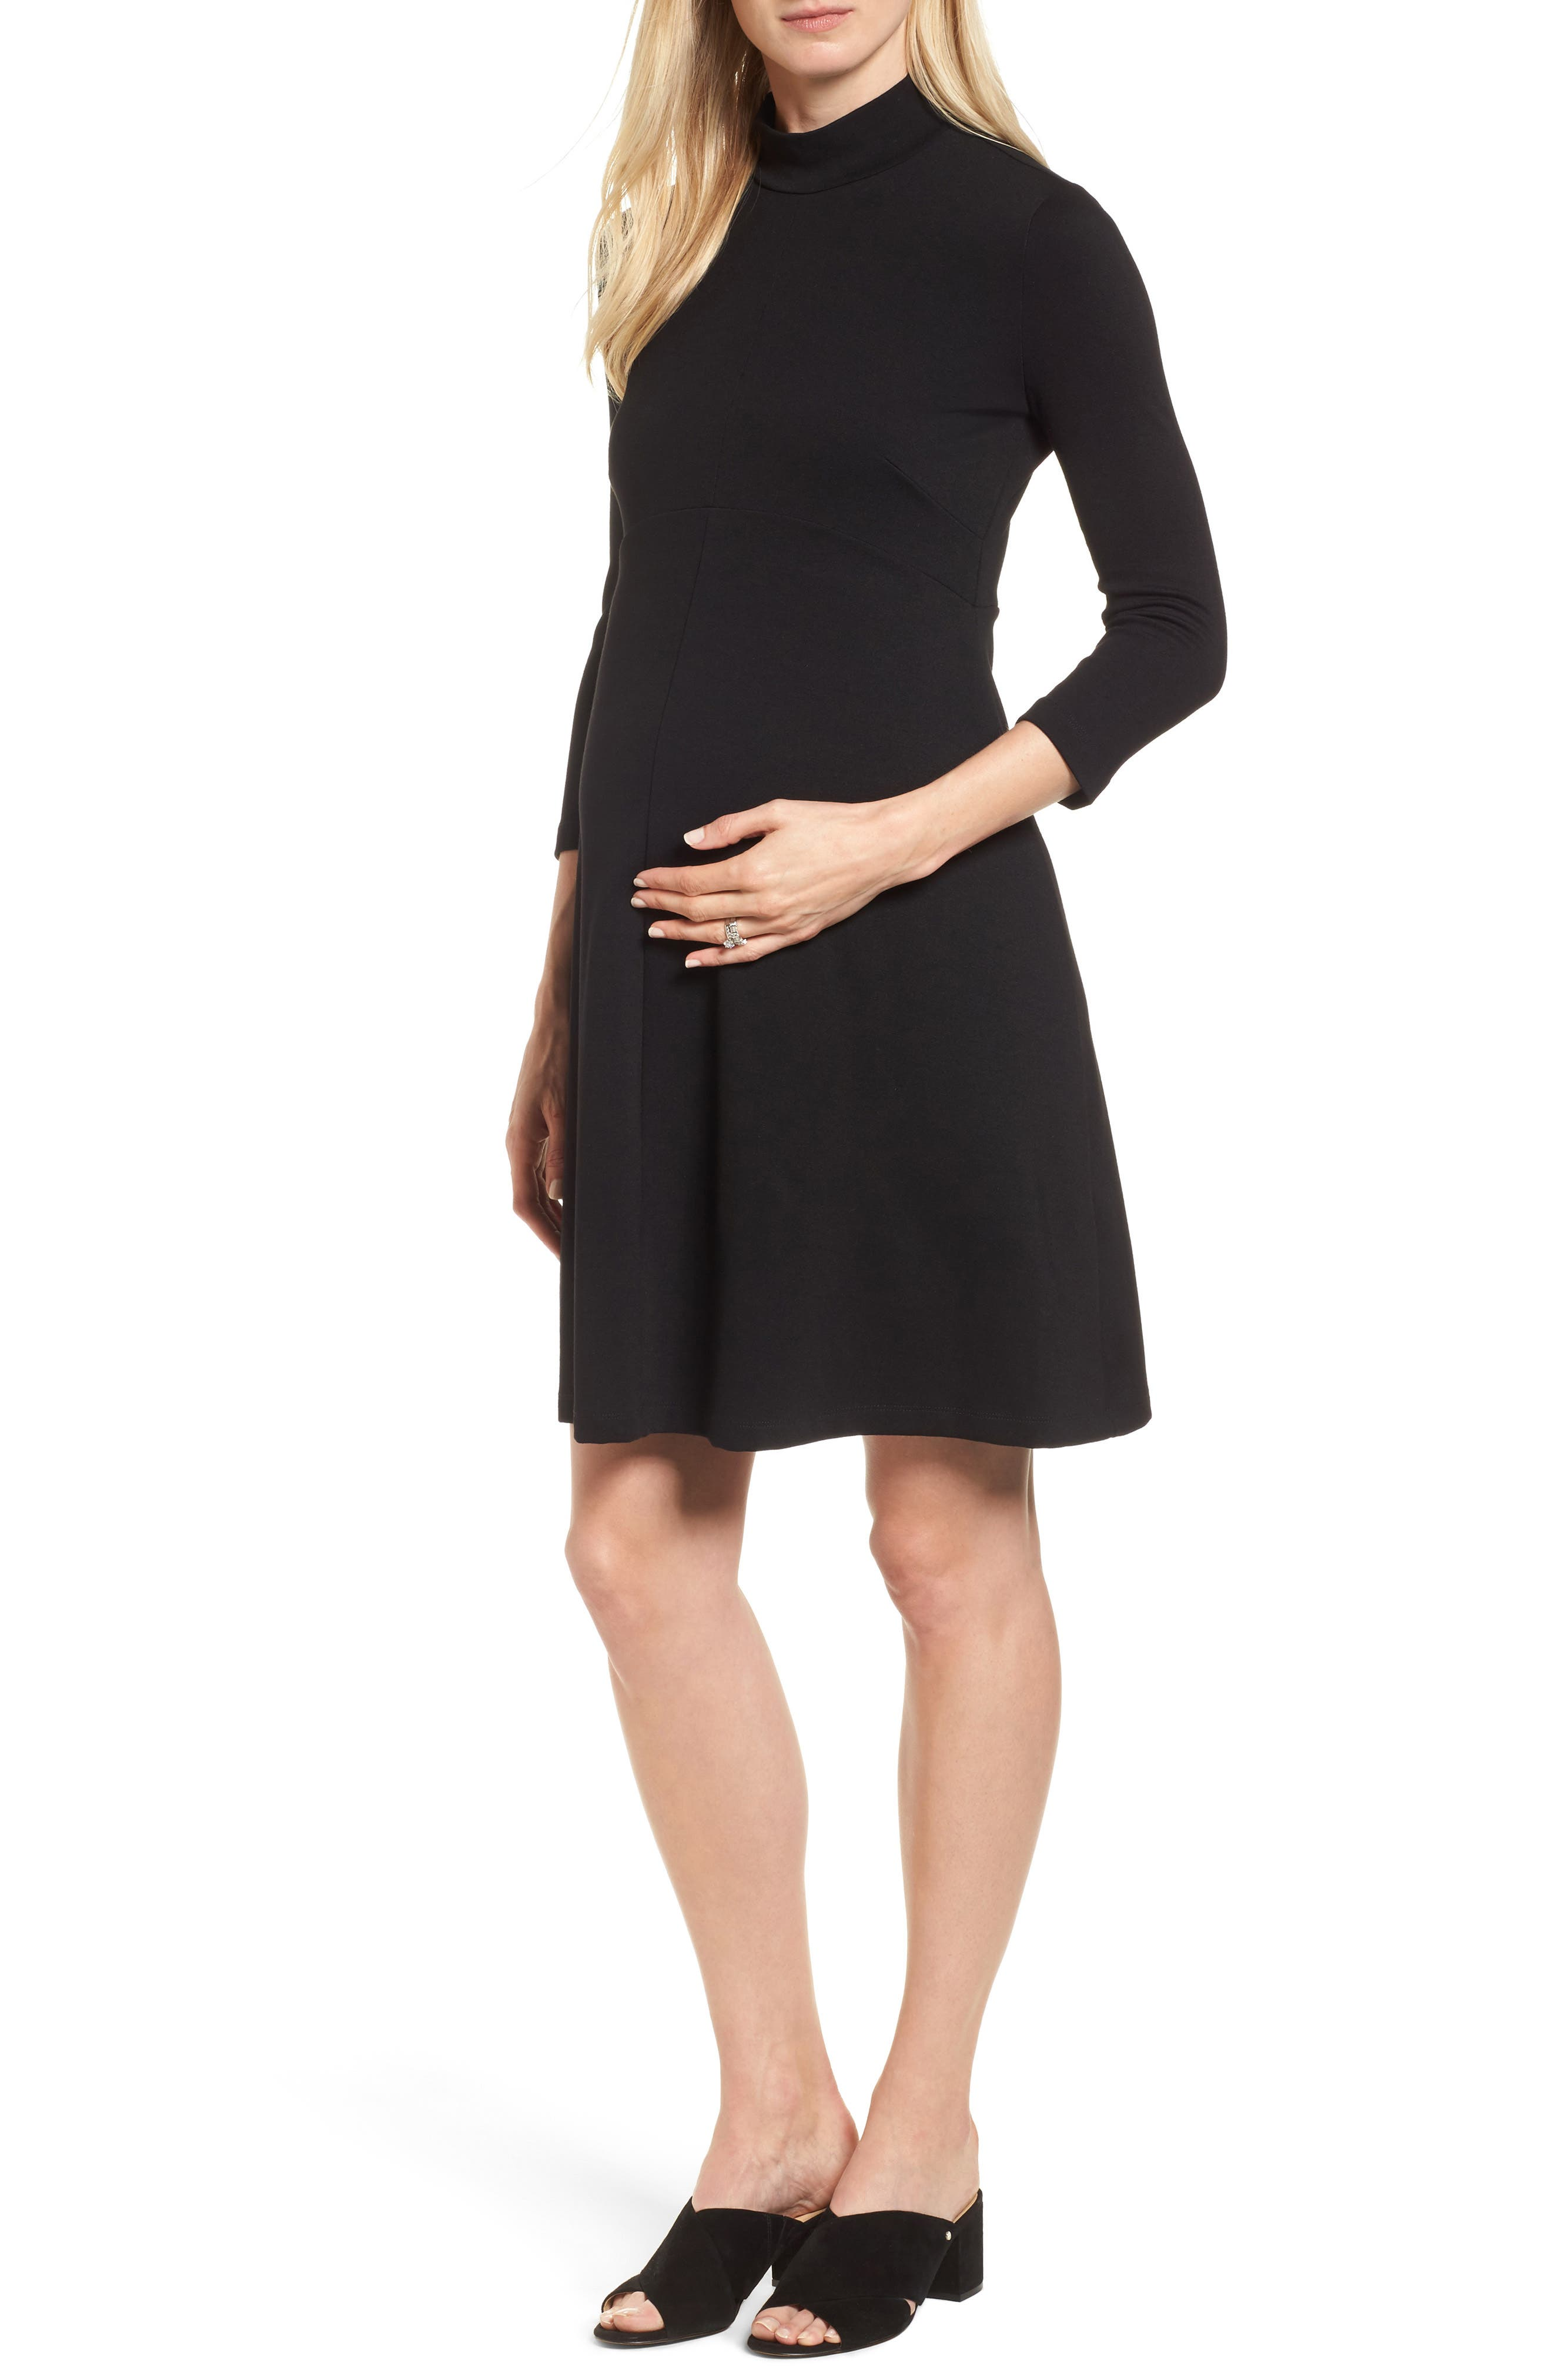 Kennett Maternity Dress,                             Main thumbnail 1, color,                             001